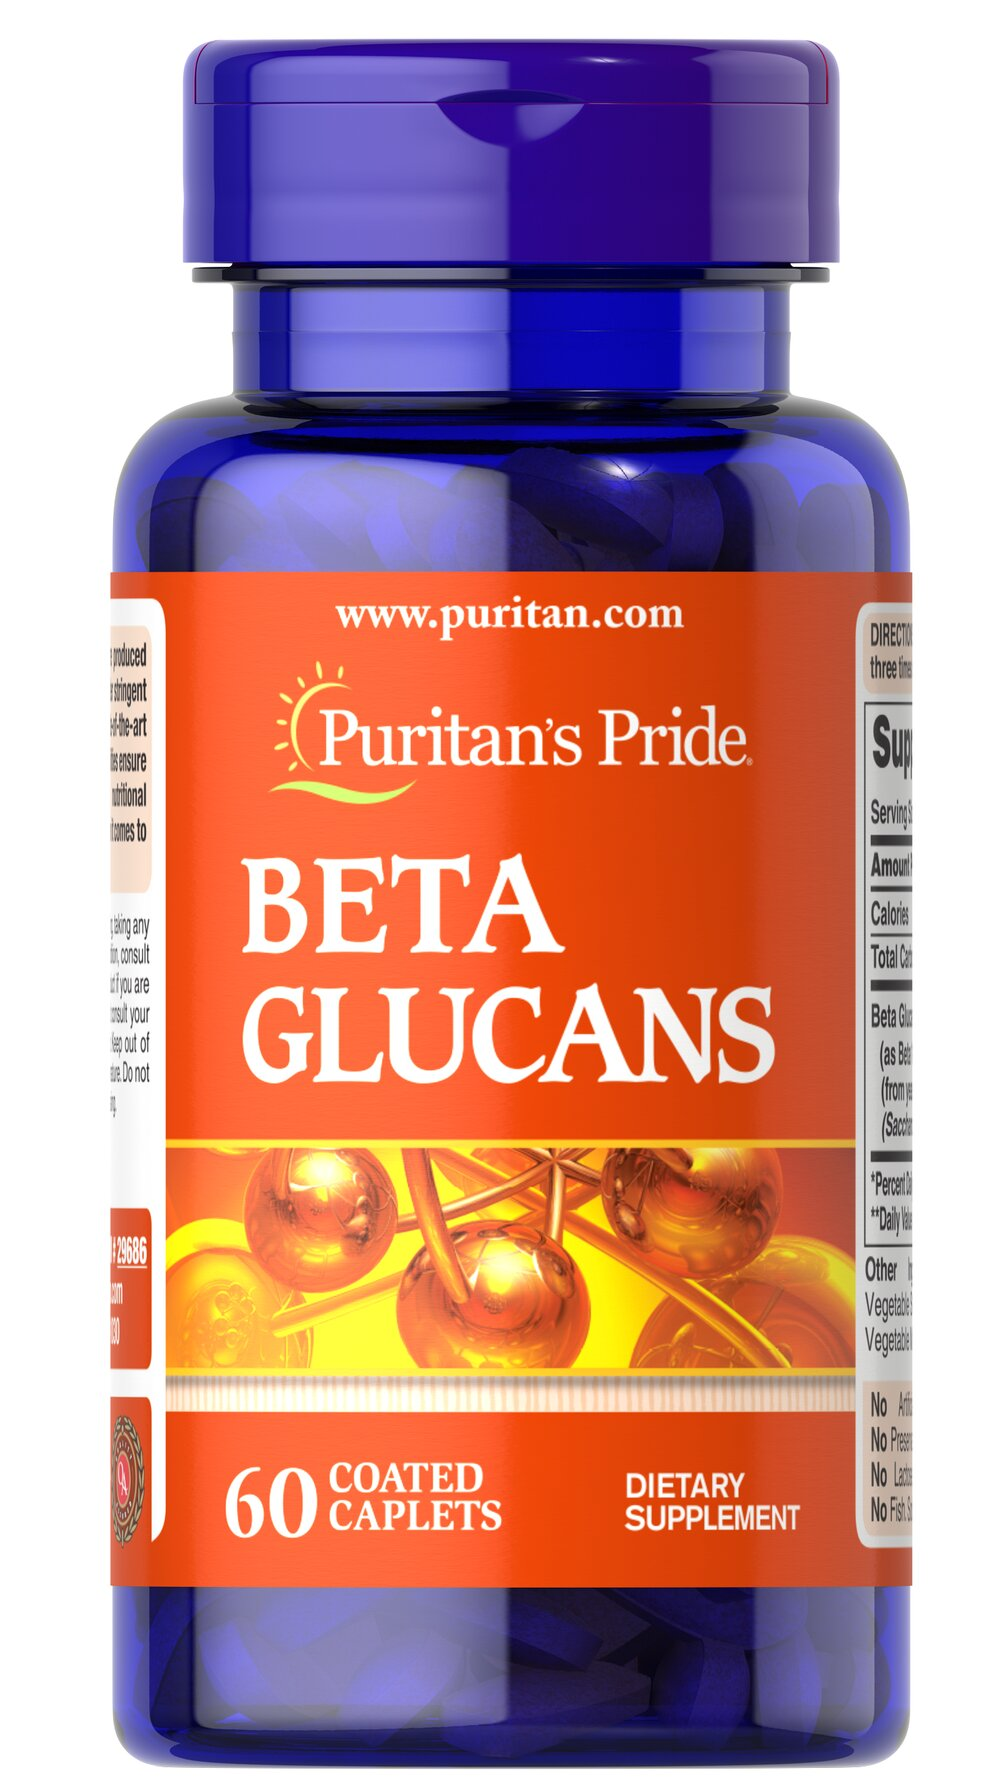 Beta Glucans 200 mg <p>Beta 1,3 Glucans are the major structural components of yeast</p> <p>Our Beta 1,3 Glucans are derived from the cell walls of yeast</p> <p>Contributes to healthy immune function**</p> <p>Contains 200 mg of Beta 1,3 Glucans per tablet</p> <p>These tablets are a great choice for vegetarians</p> 60 Tablets 200 mg $17.49